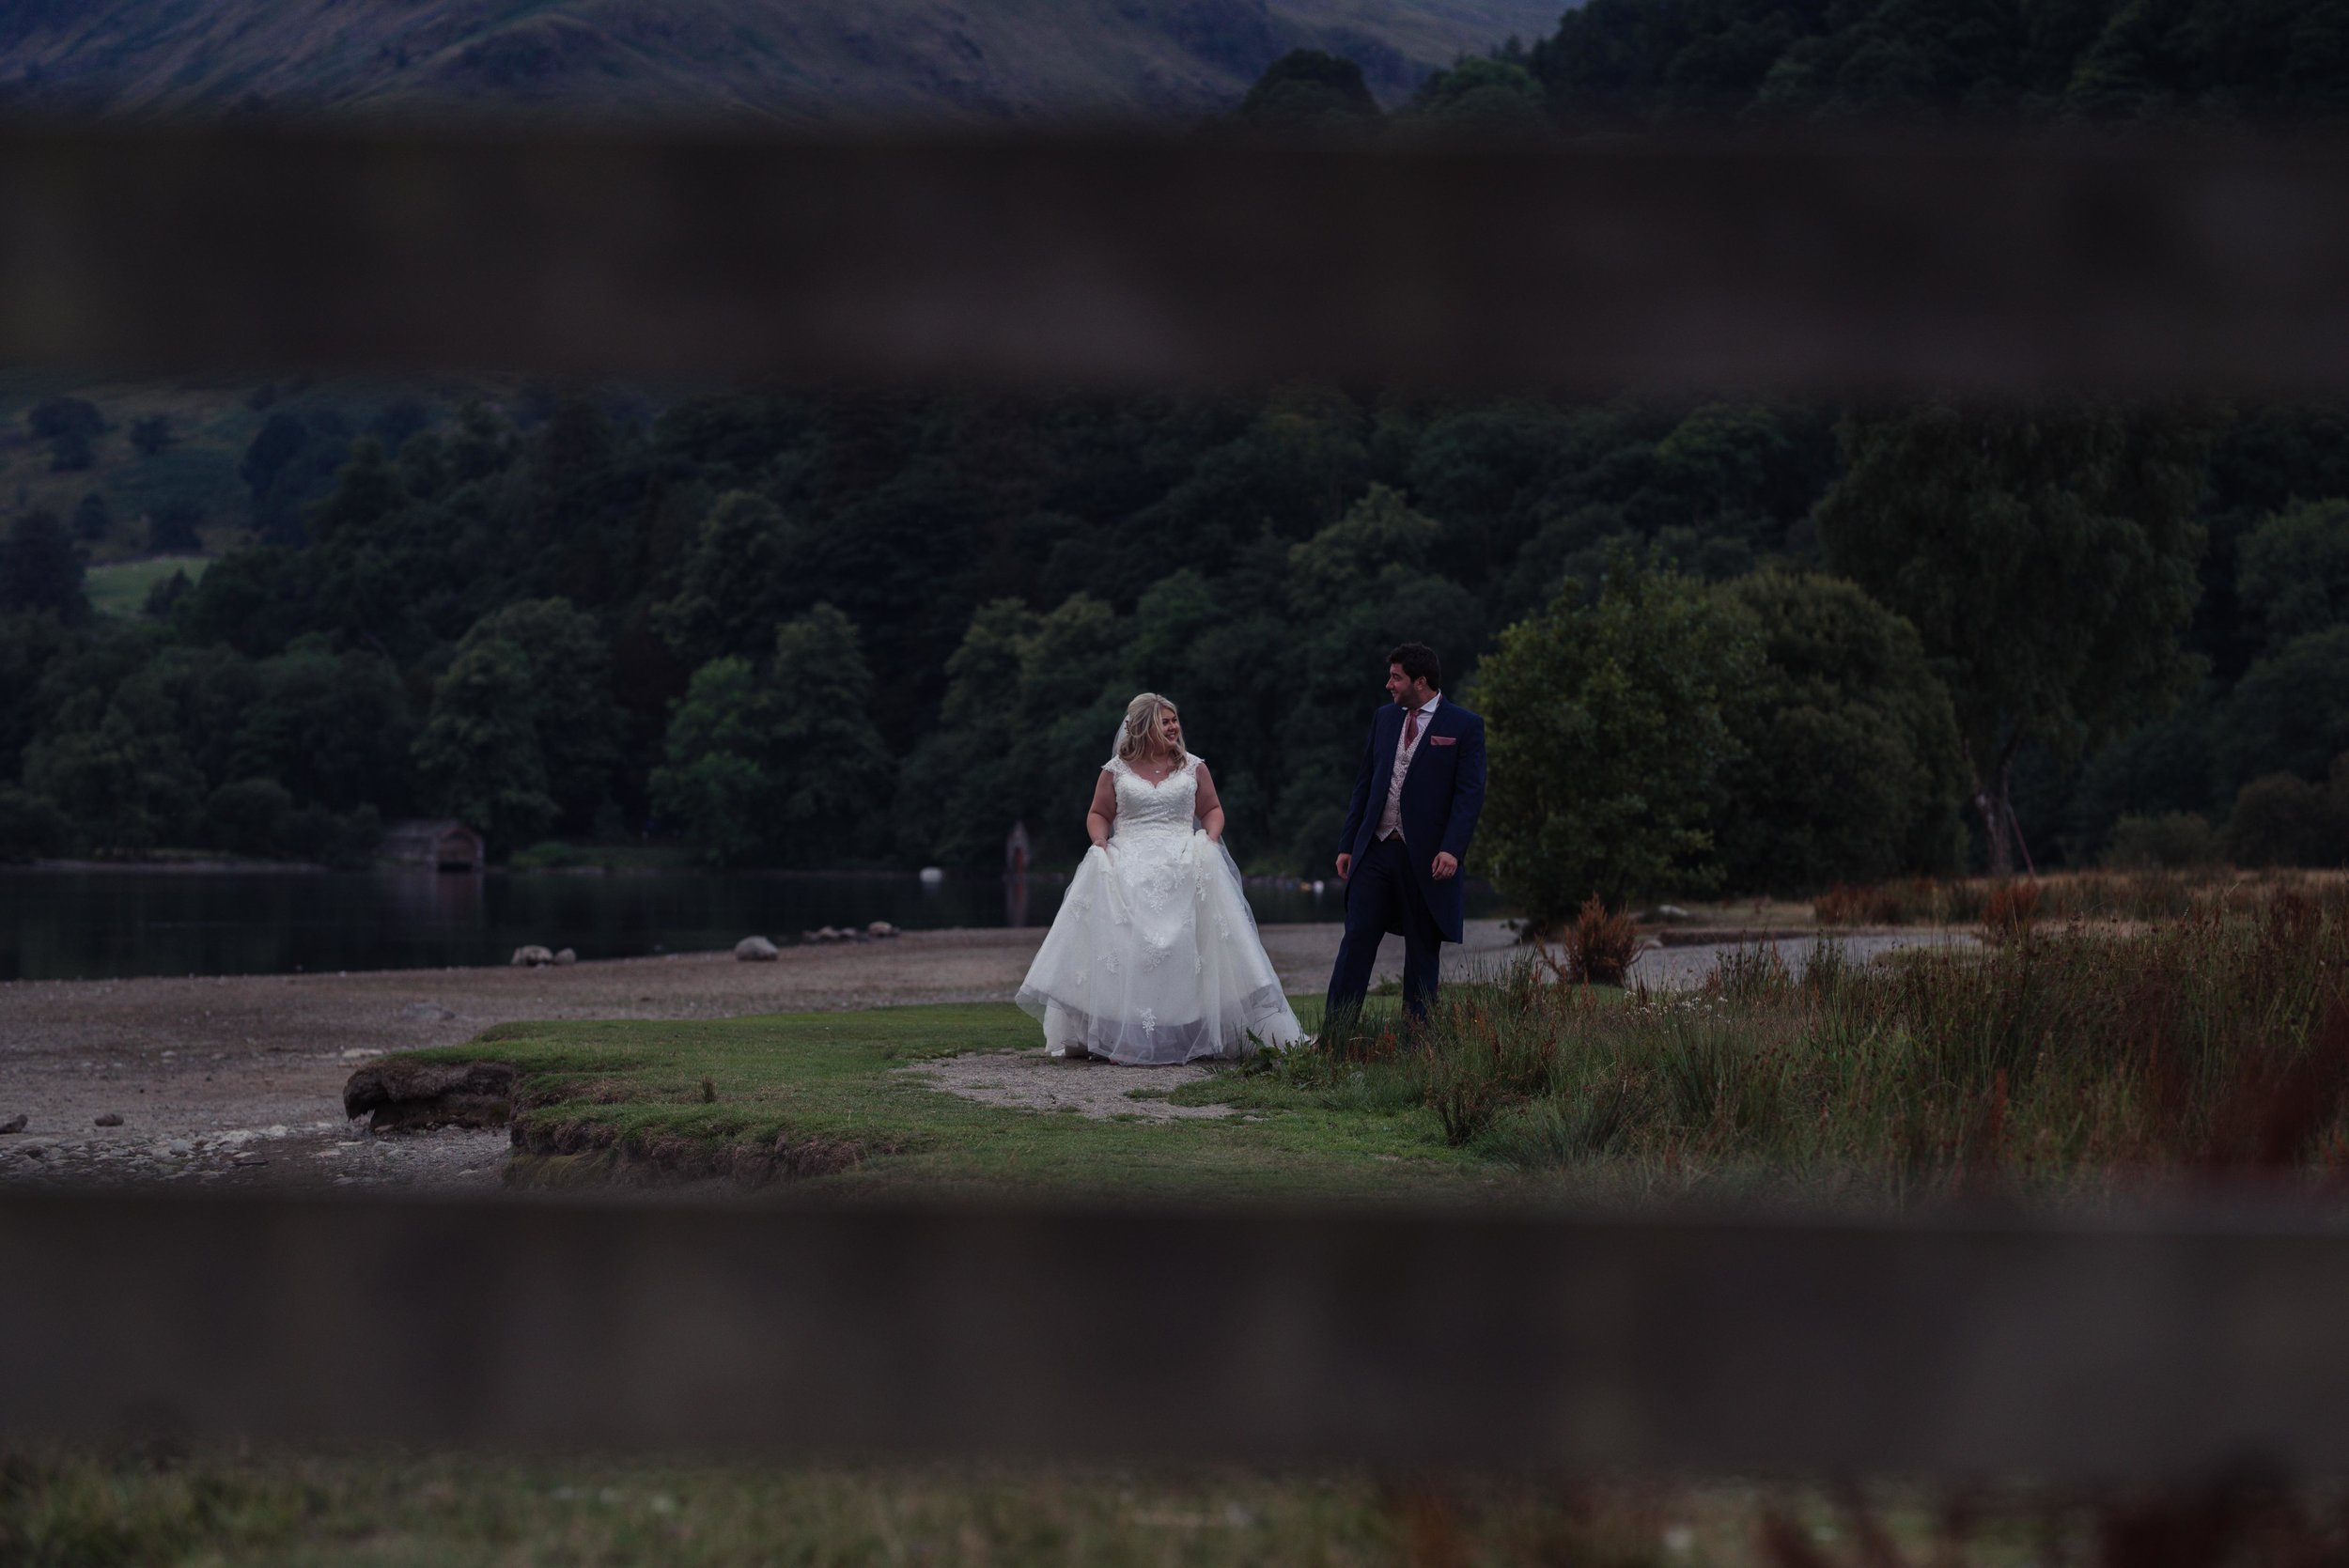 The bride and groom walk alongside the lake